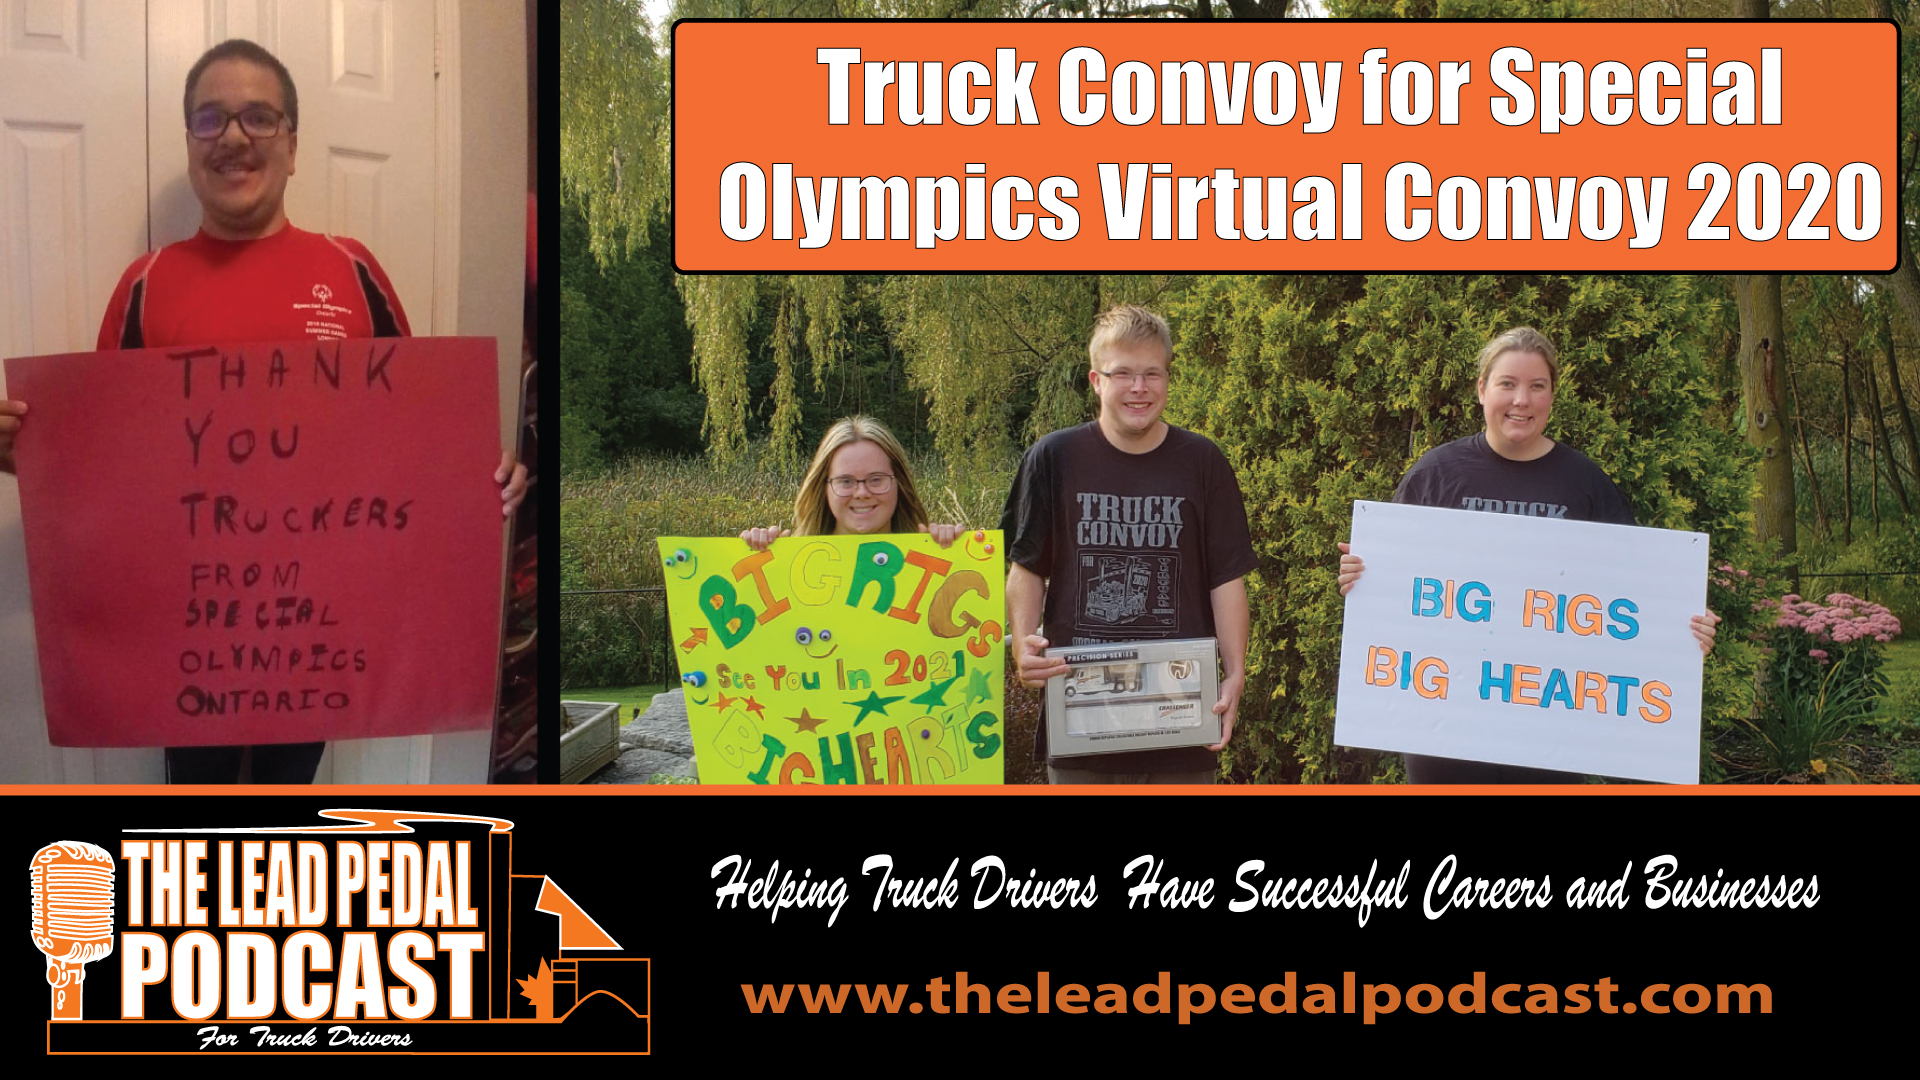 Truyck Convoy for Special Olympics 2020